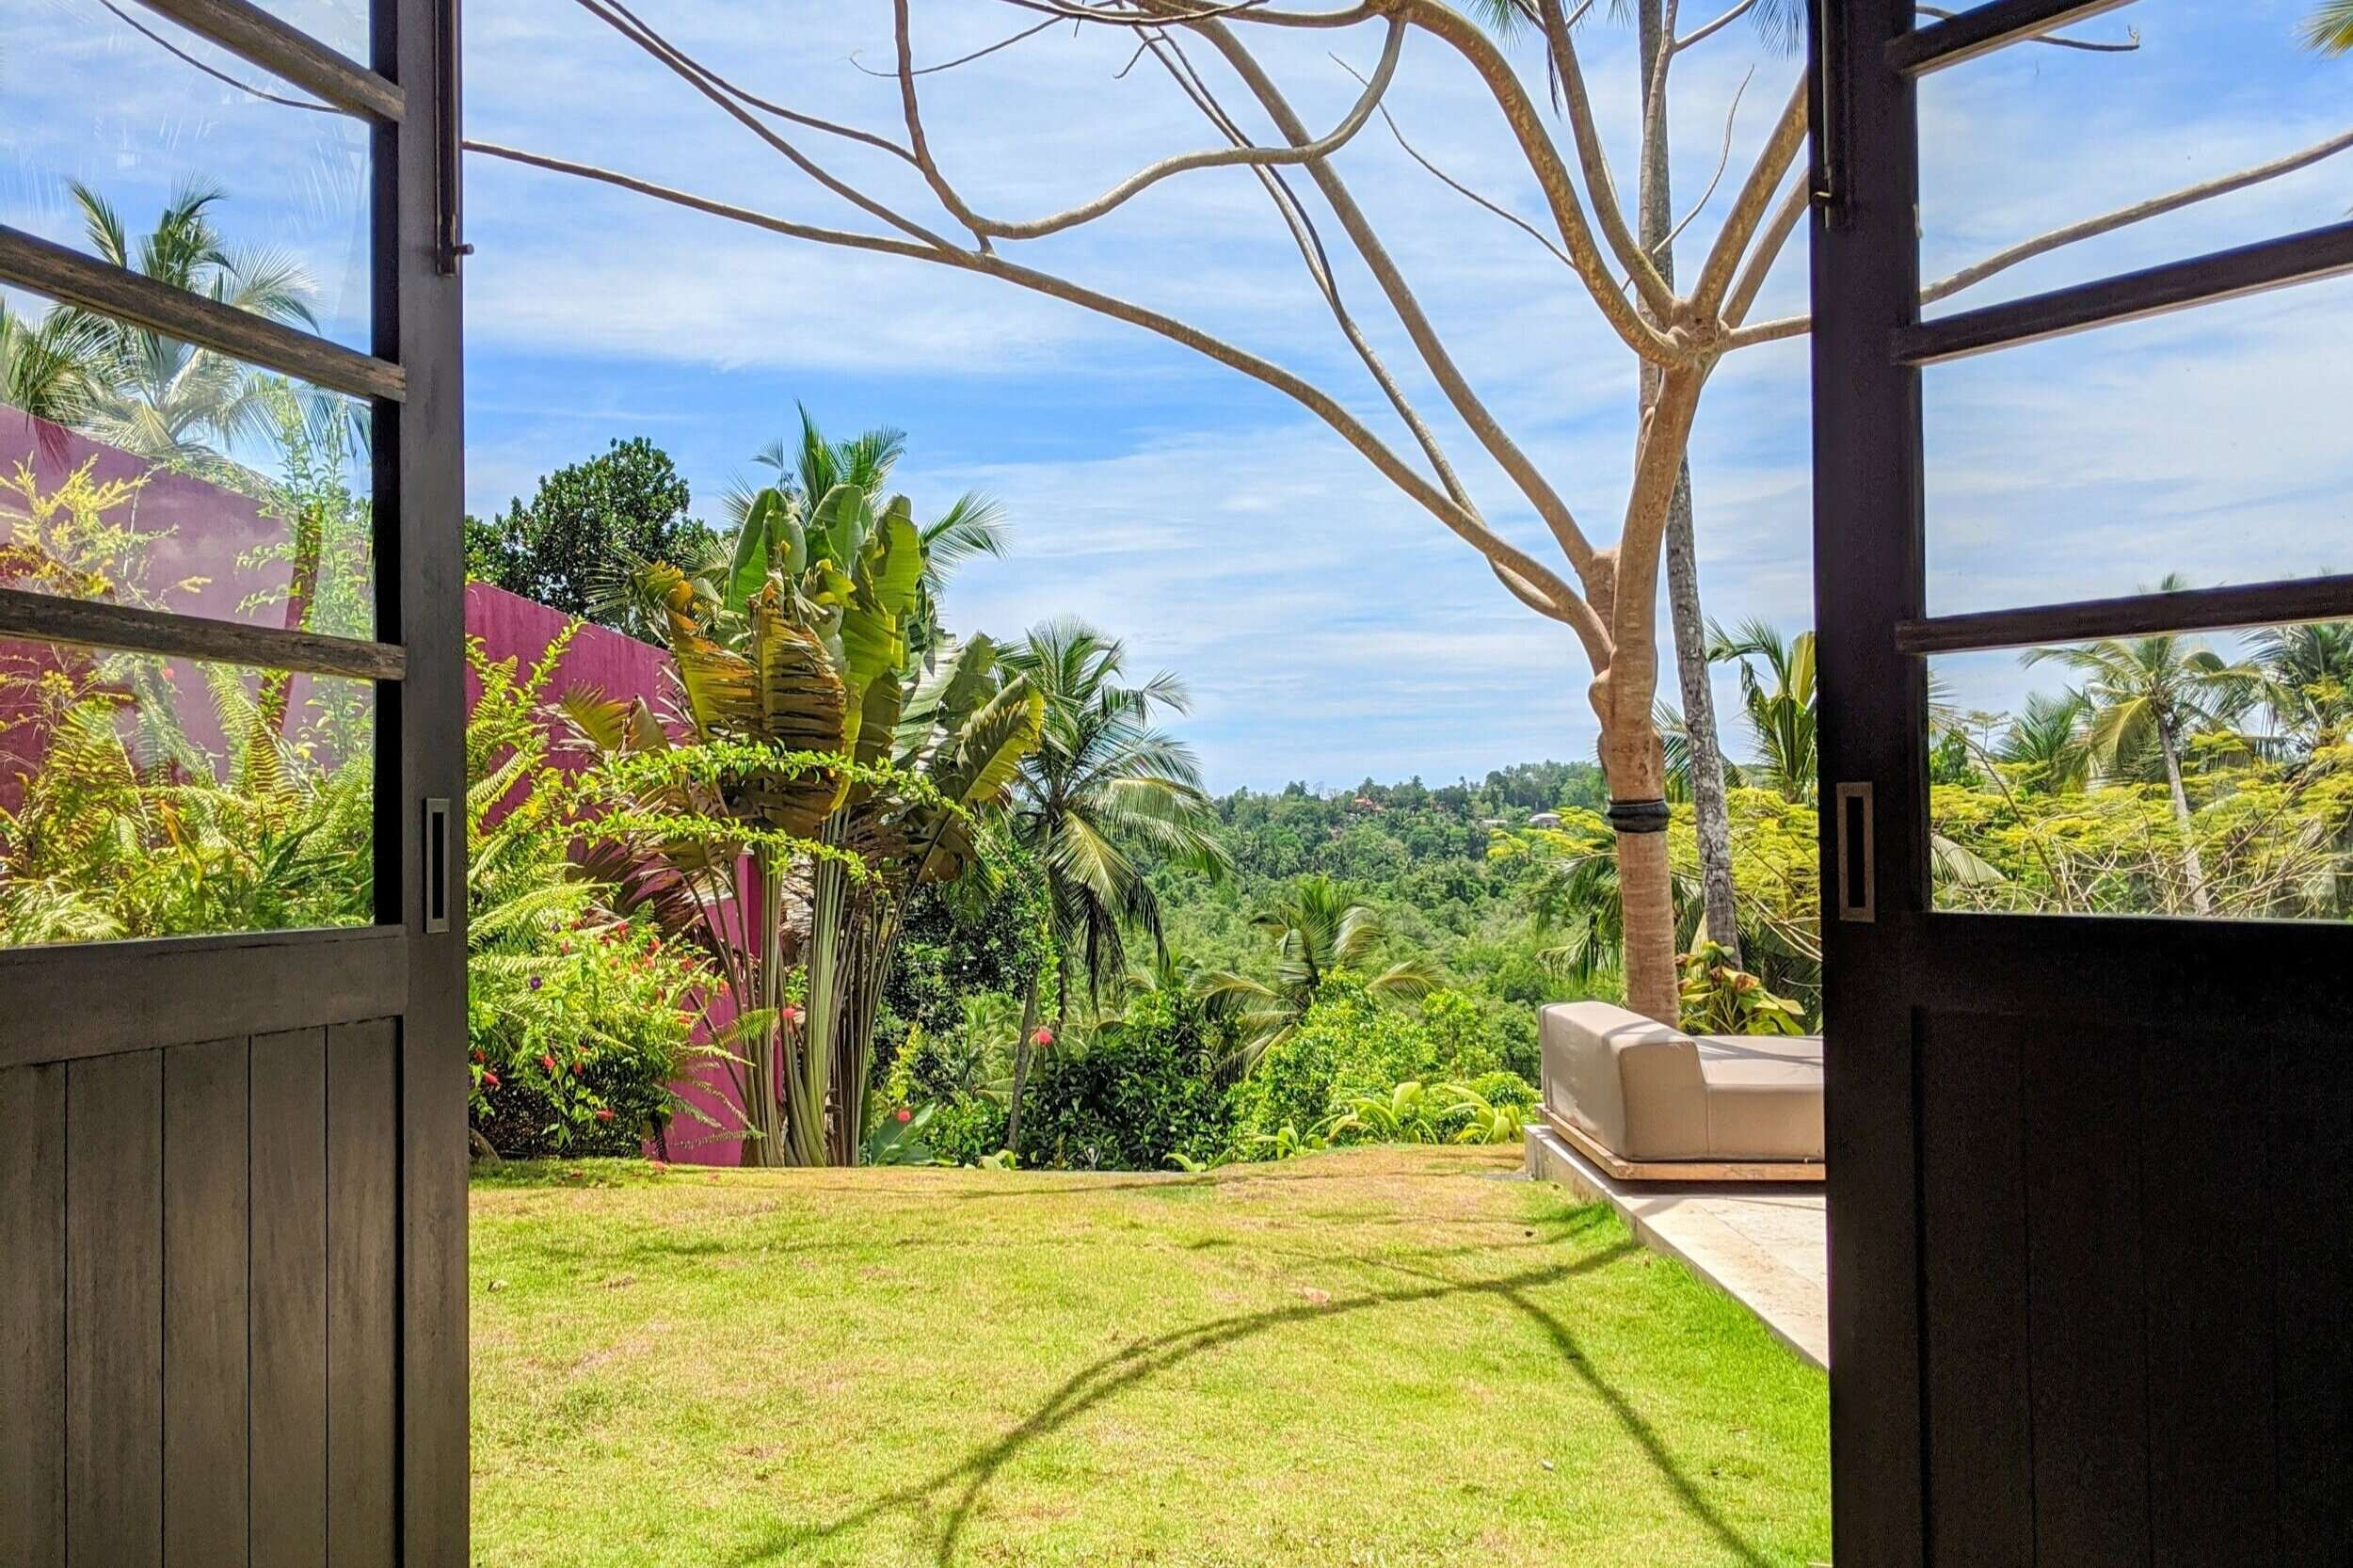 looking out of patio doors at Villa Wambatu, with blue sky, green grass and trees